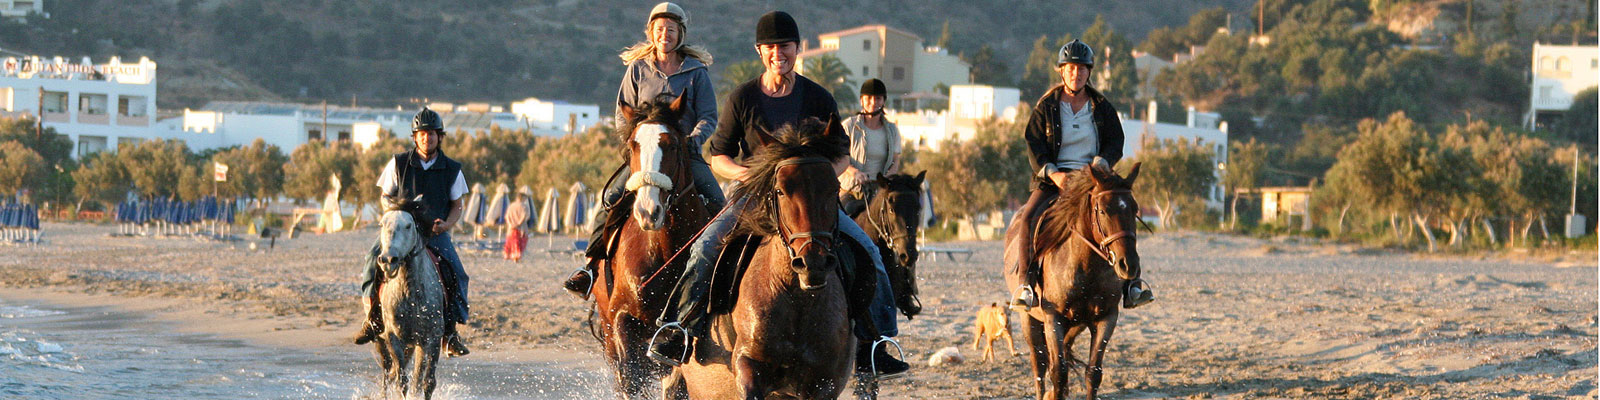 Holiday activities in Plakias, Crete